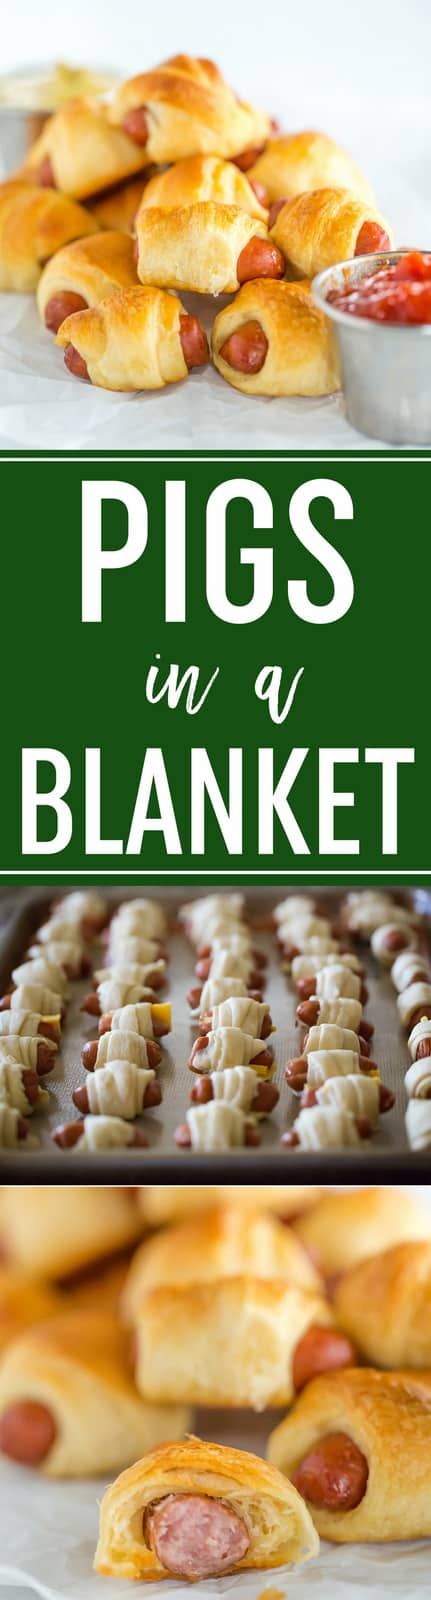 Pigs in a Blanket :: Easy recipe with only two ingredients (three if you want cheese!). Simply wrap mini hot dogs in crescent rolls and bake... Perfect for kids, parties and the Super Bowl! #hotdogs #lilsmokies #crescentdogs #appetizers #snacks #superbowl